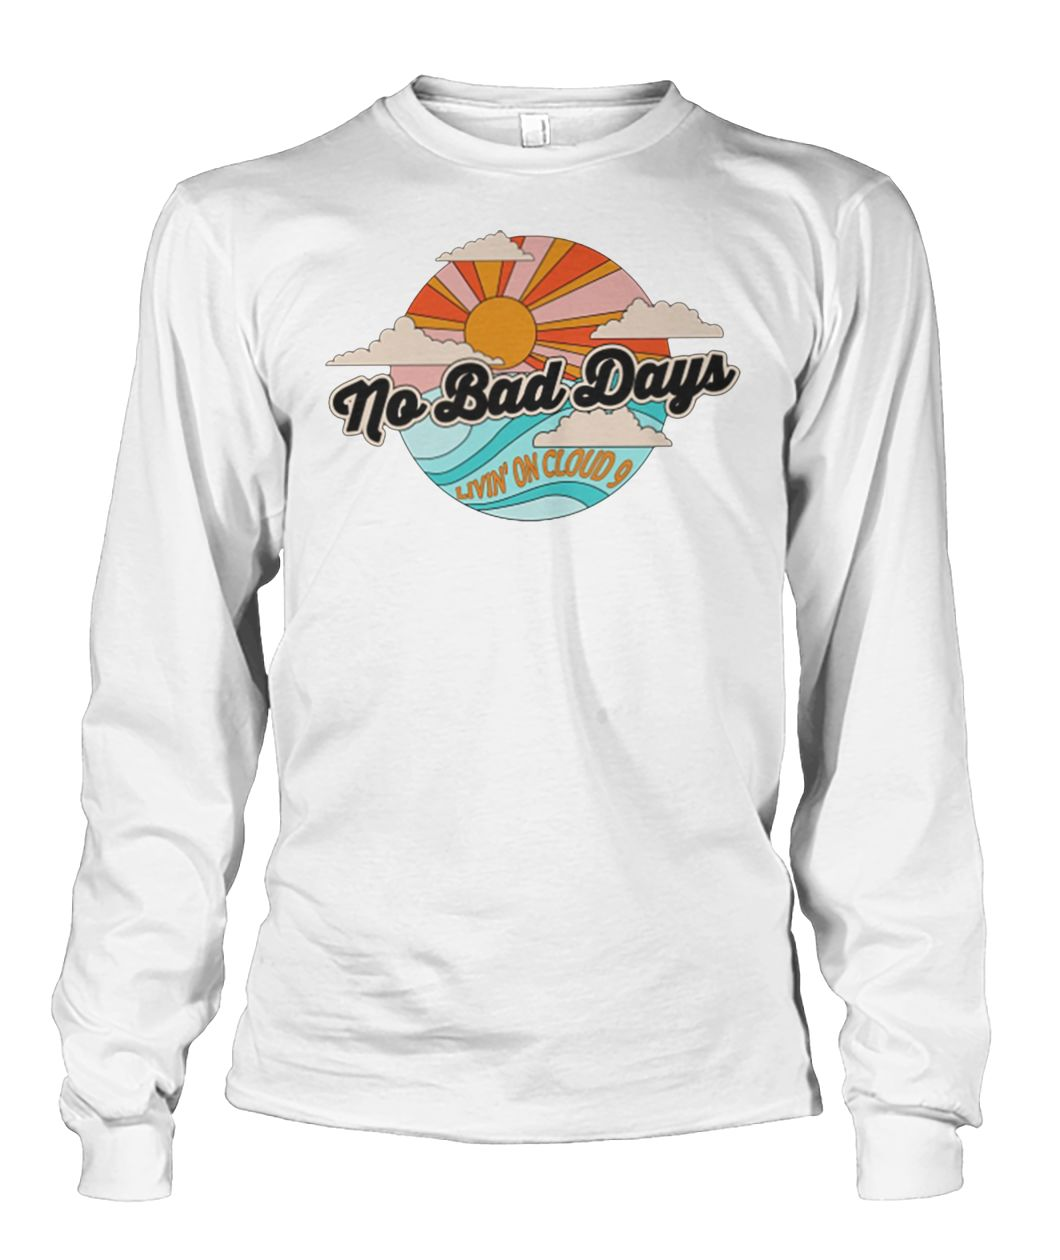 No bad days living on cloud 9 unisex long sleeve